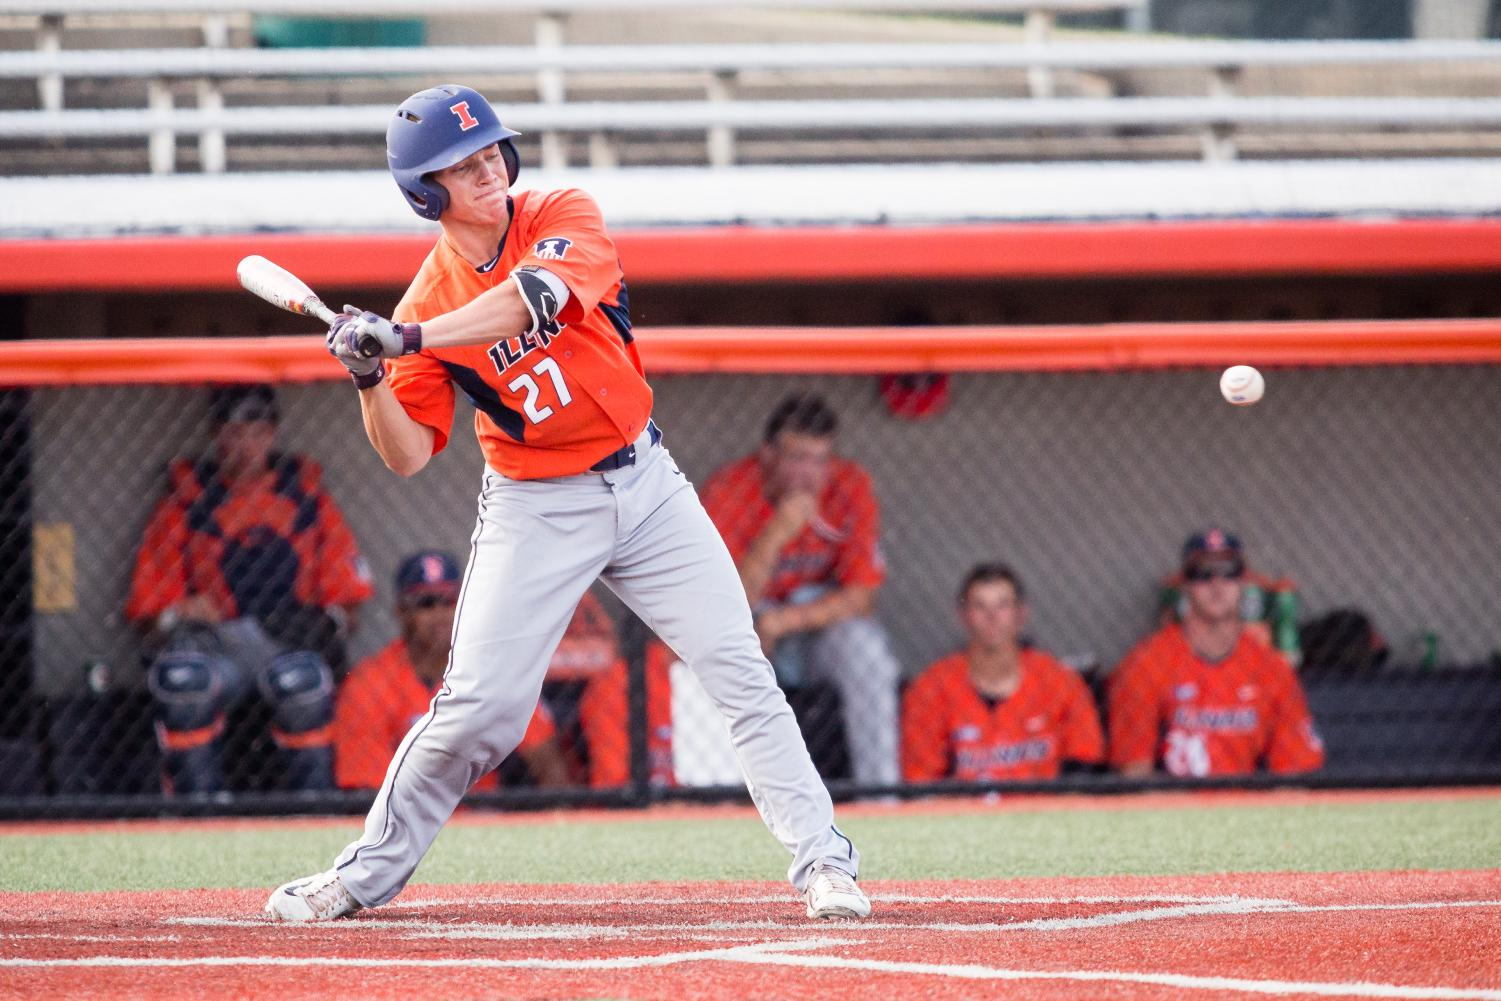 Illinois infielder Grant Van Scoy swings at the pitch during the game against Indiana State at Illinois Field on Sept. 24.